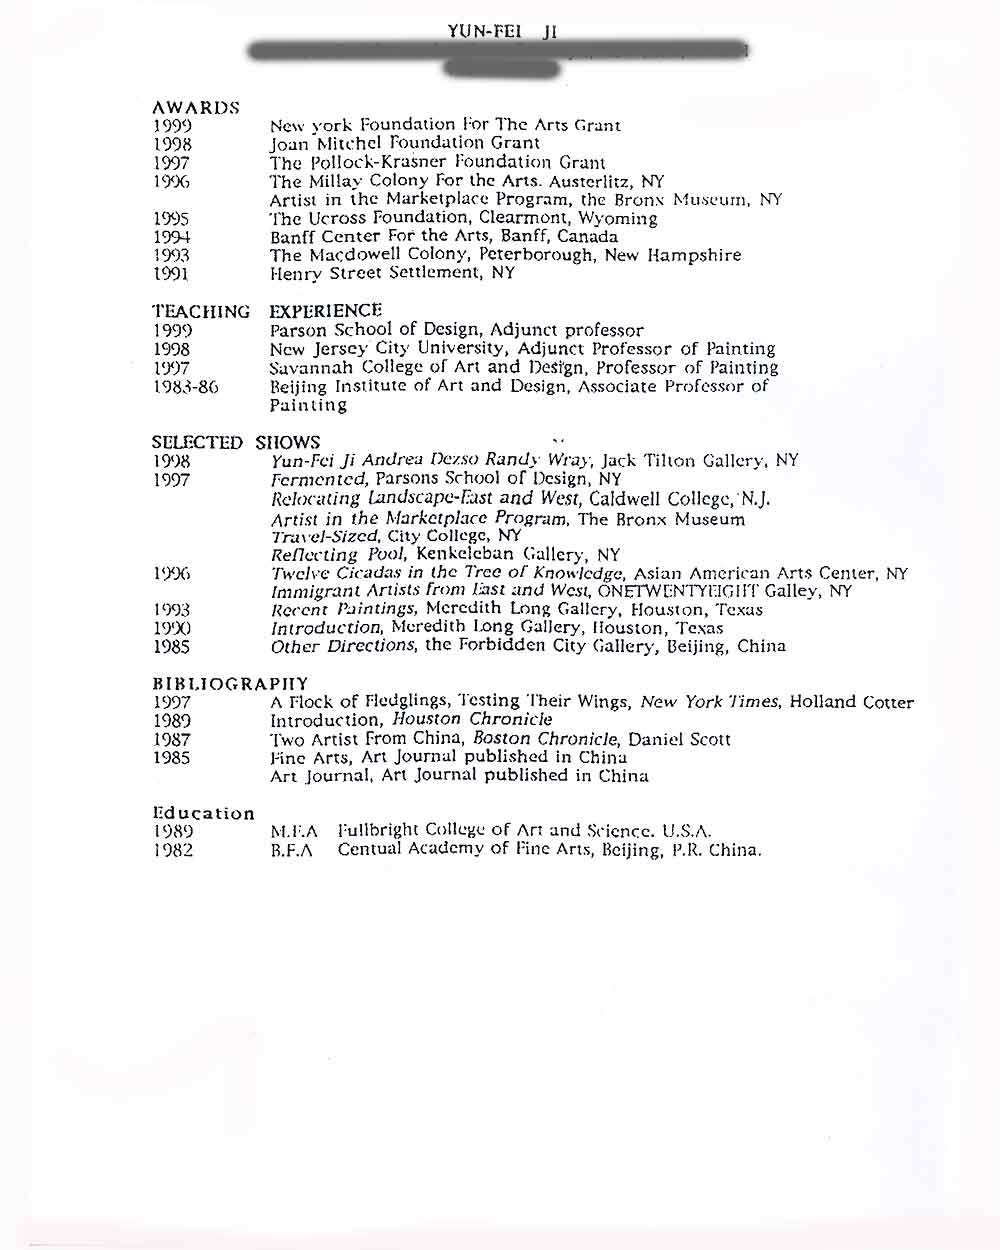 Yun-Fei Ji's Resume, 1999